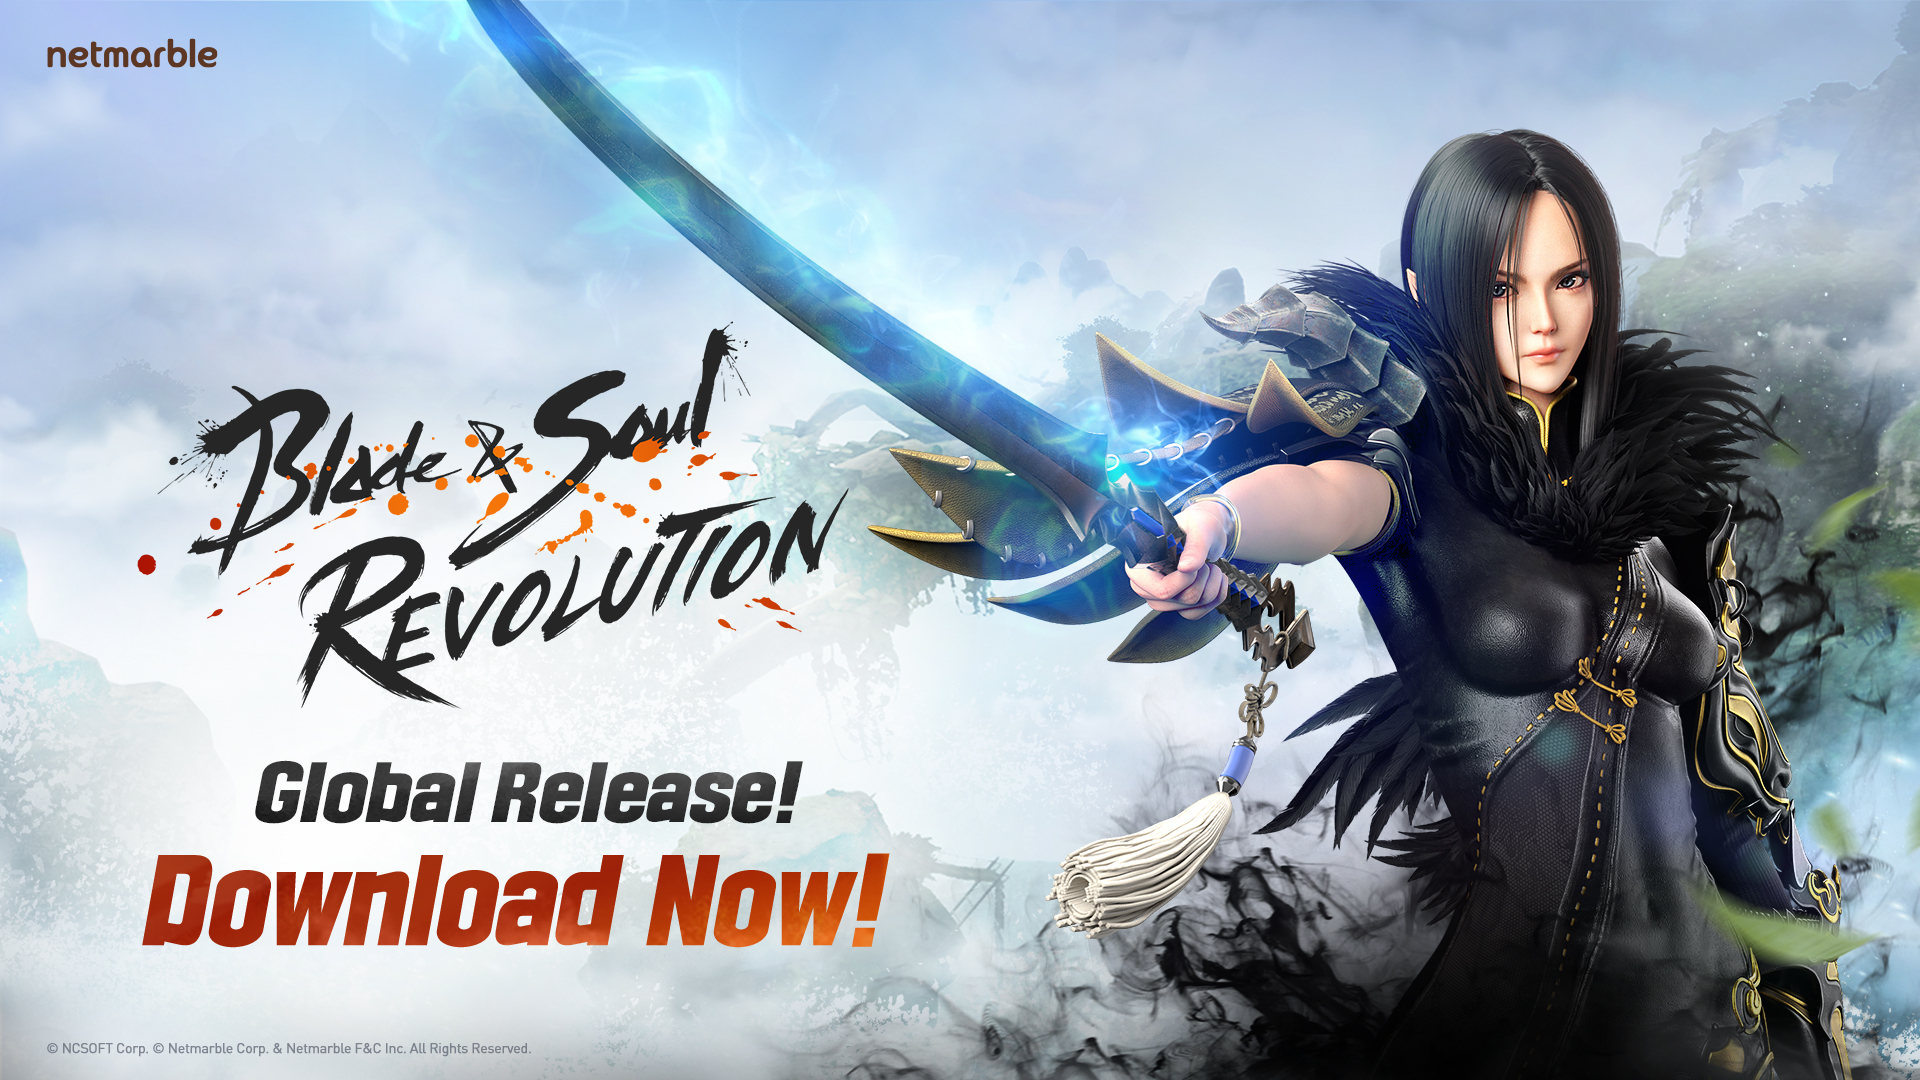 El MMO Blade & Soul Revolution ya está disponible en dispositivos móviles